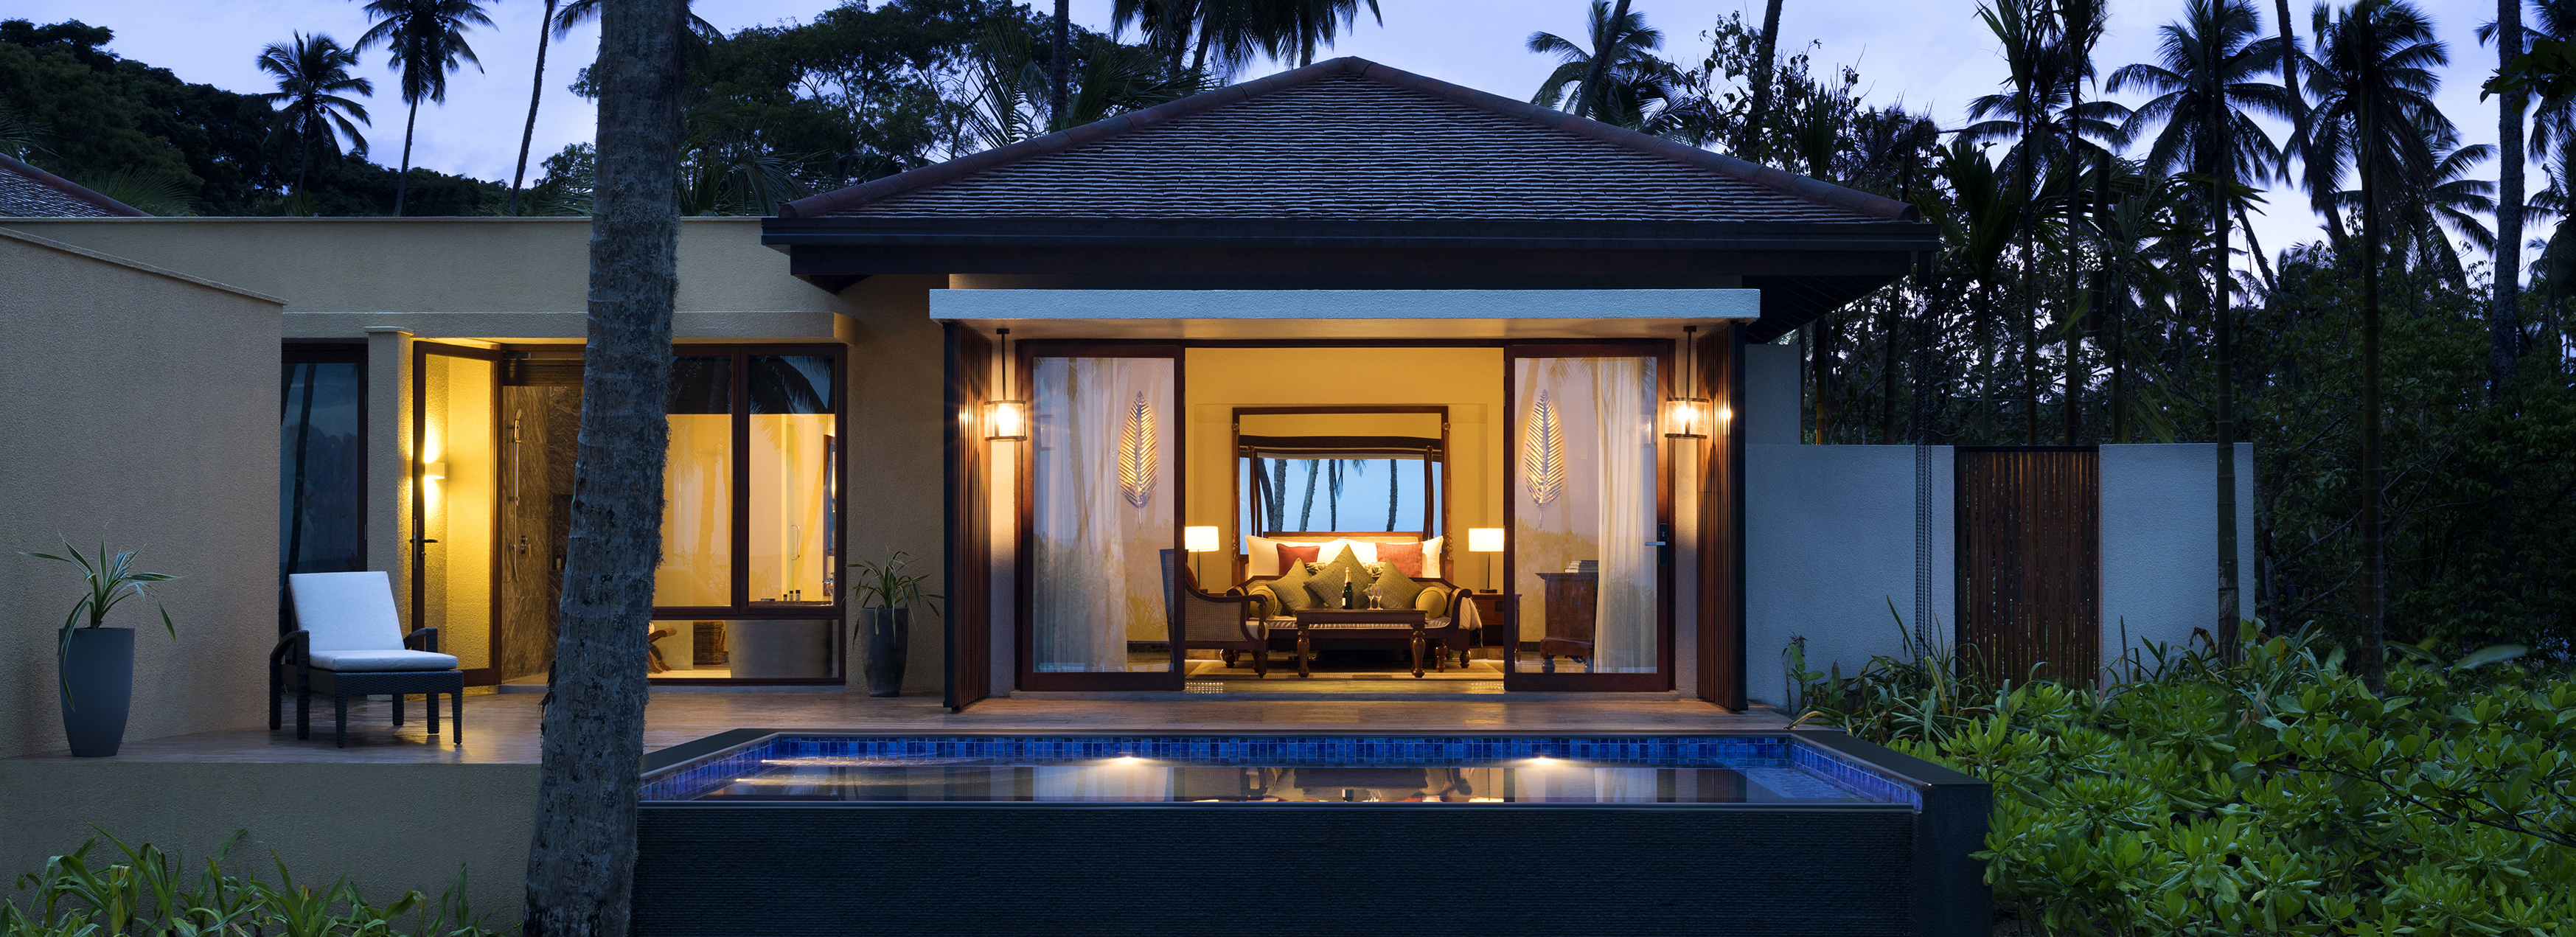 anantara-peace-haven-beach-villa